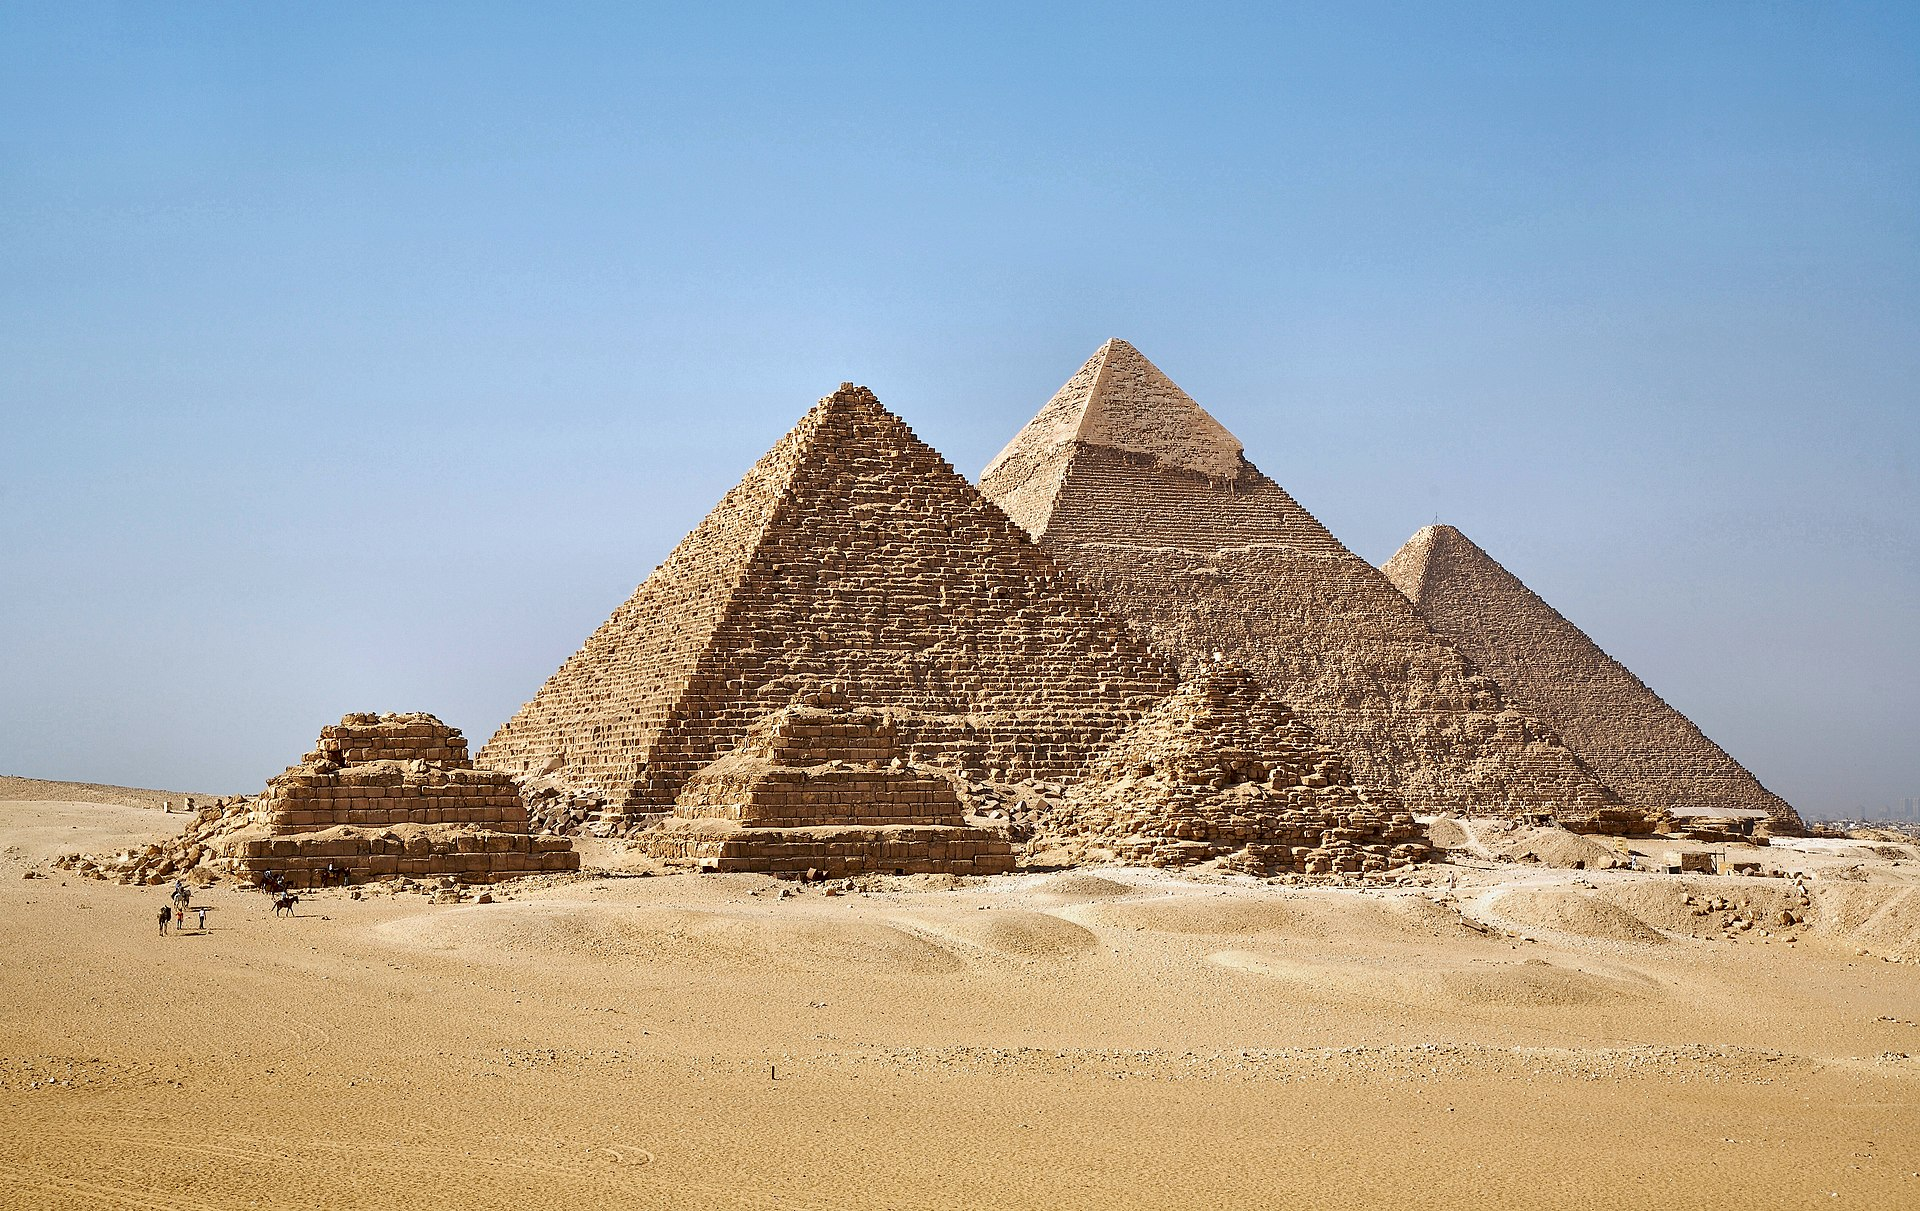 An example of Architecture from Wikipedia, The Pyramids at Gizah - © CC BY-SA 2.0